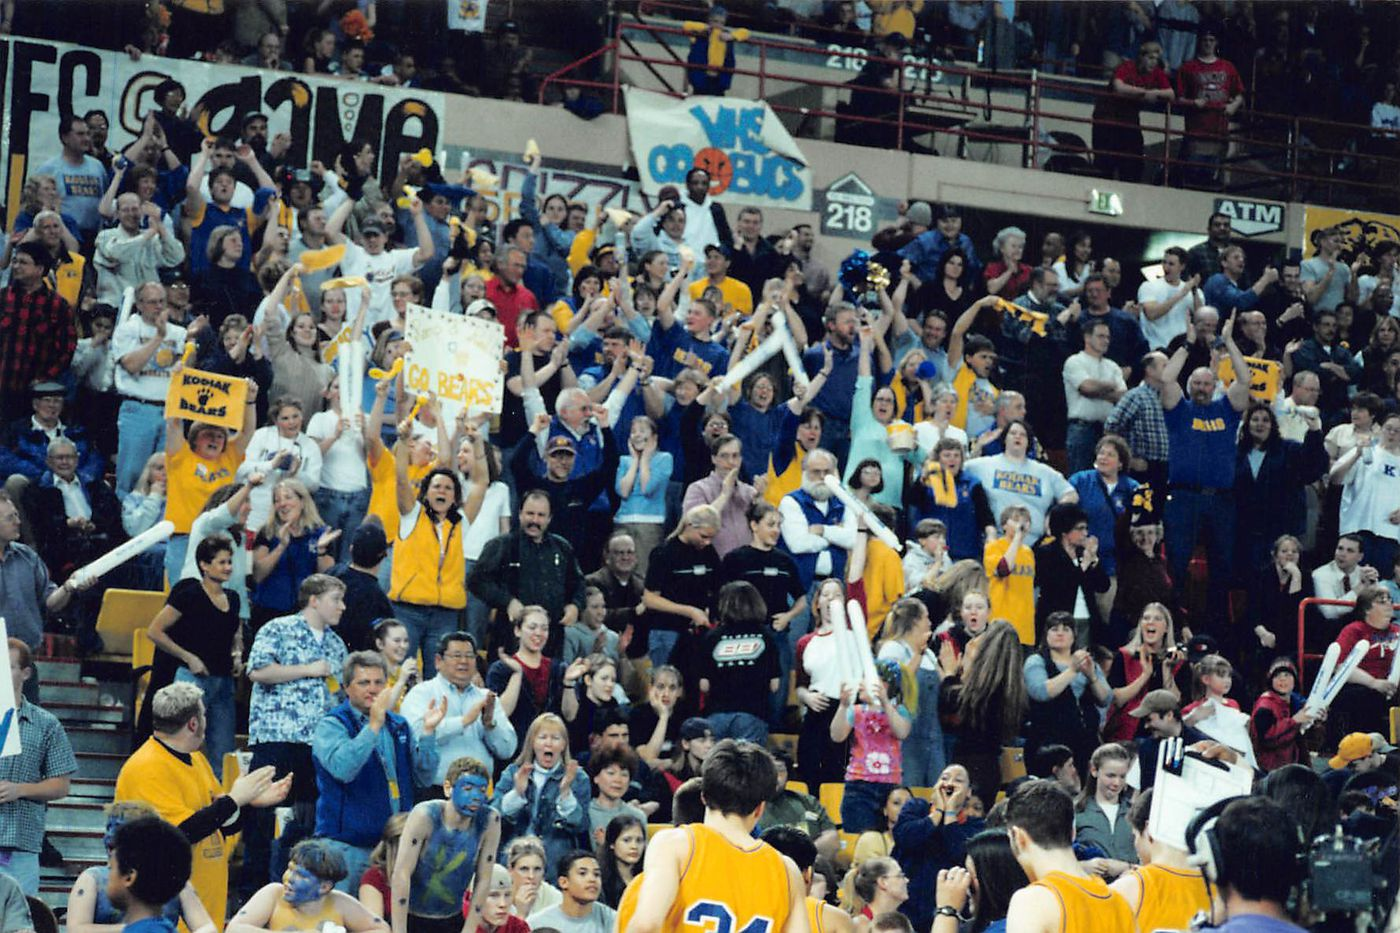 Kodiak High School boys basketball fans cheer for their team in the Sullivan Arena on March 24, 2001. (Photo courtesy Amy Fogle)